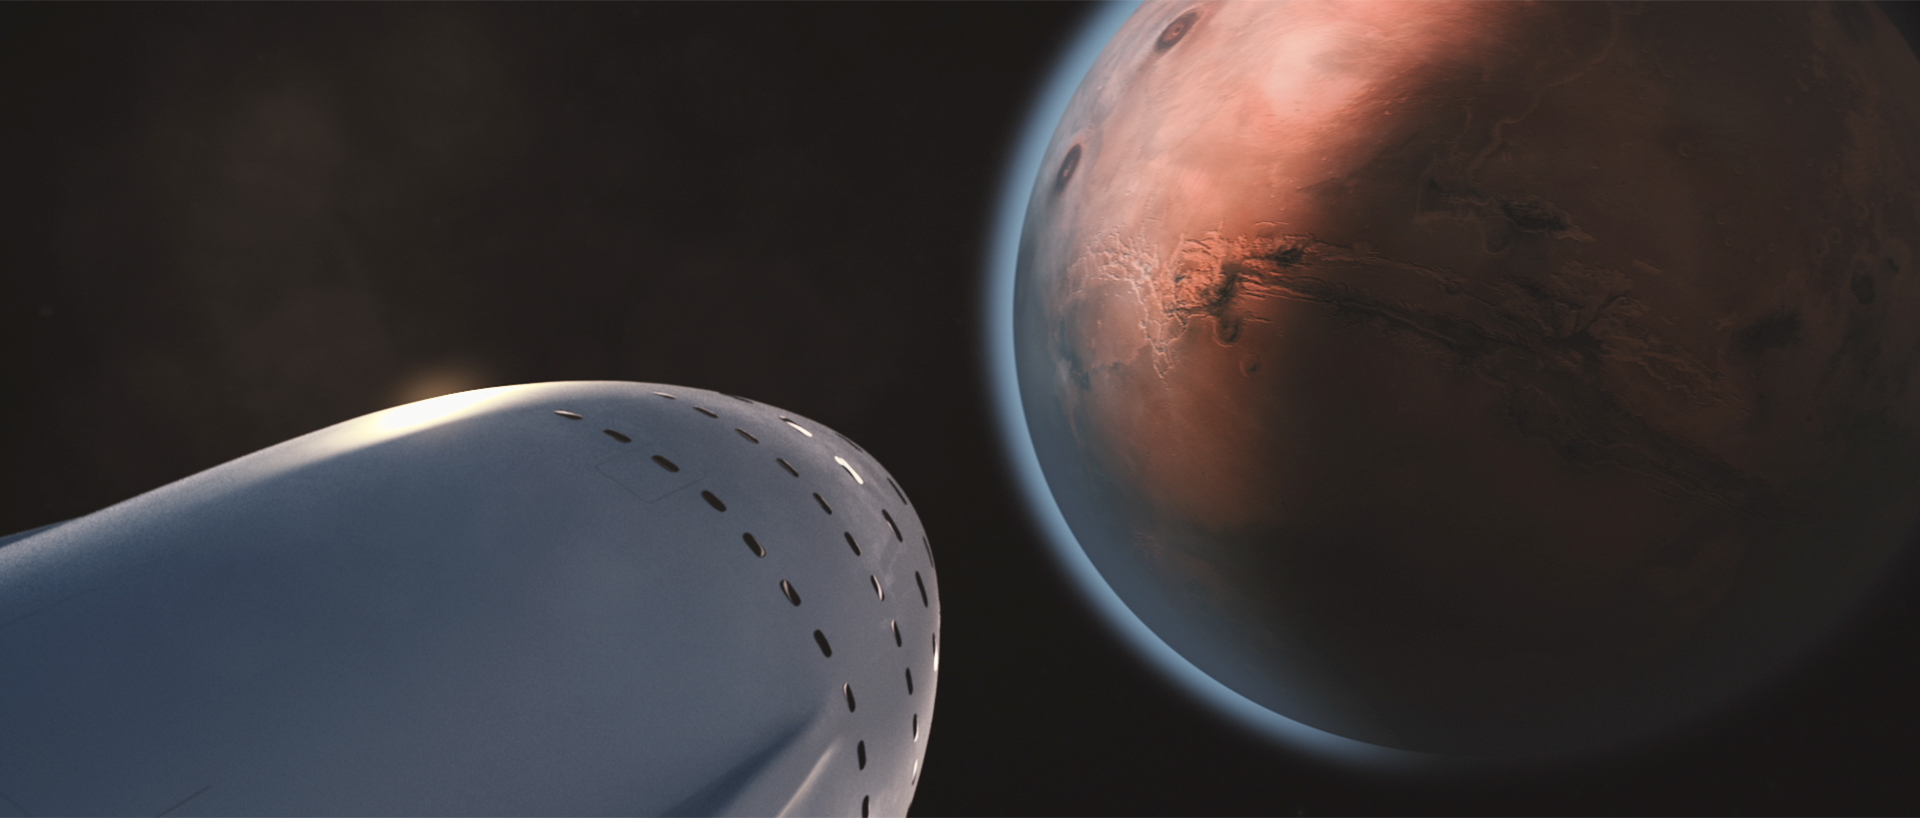 1st Mars Colonists Should Be 'Prepared to Die,' Elon Musk Says